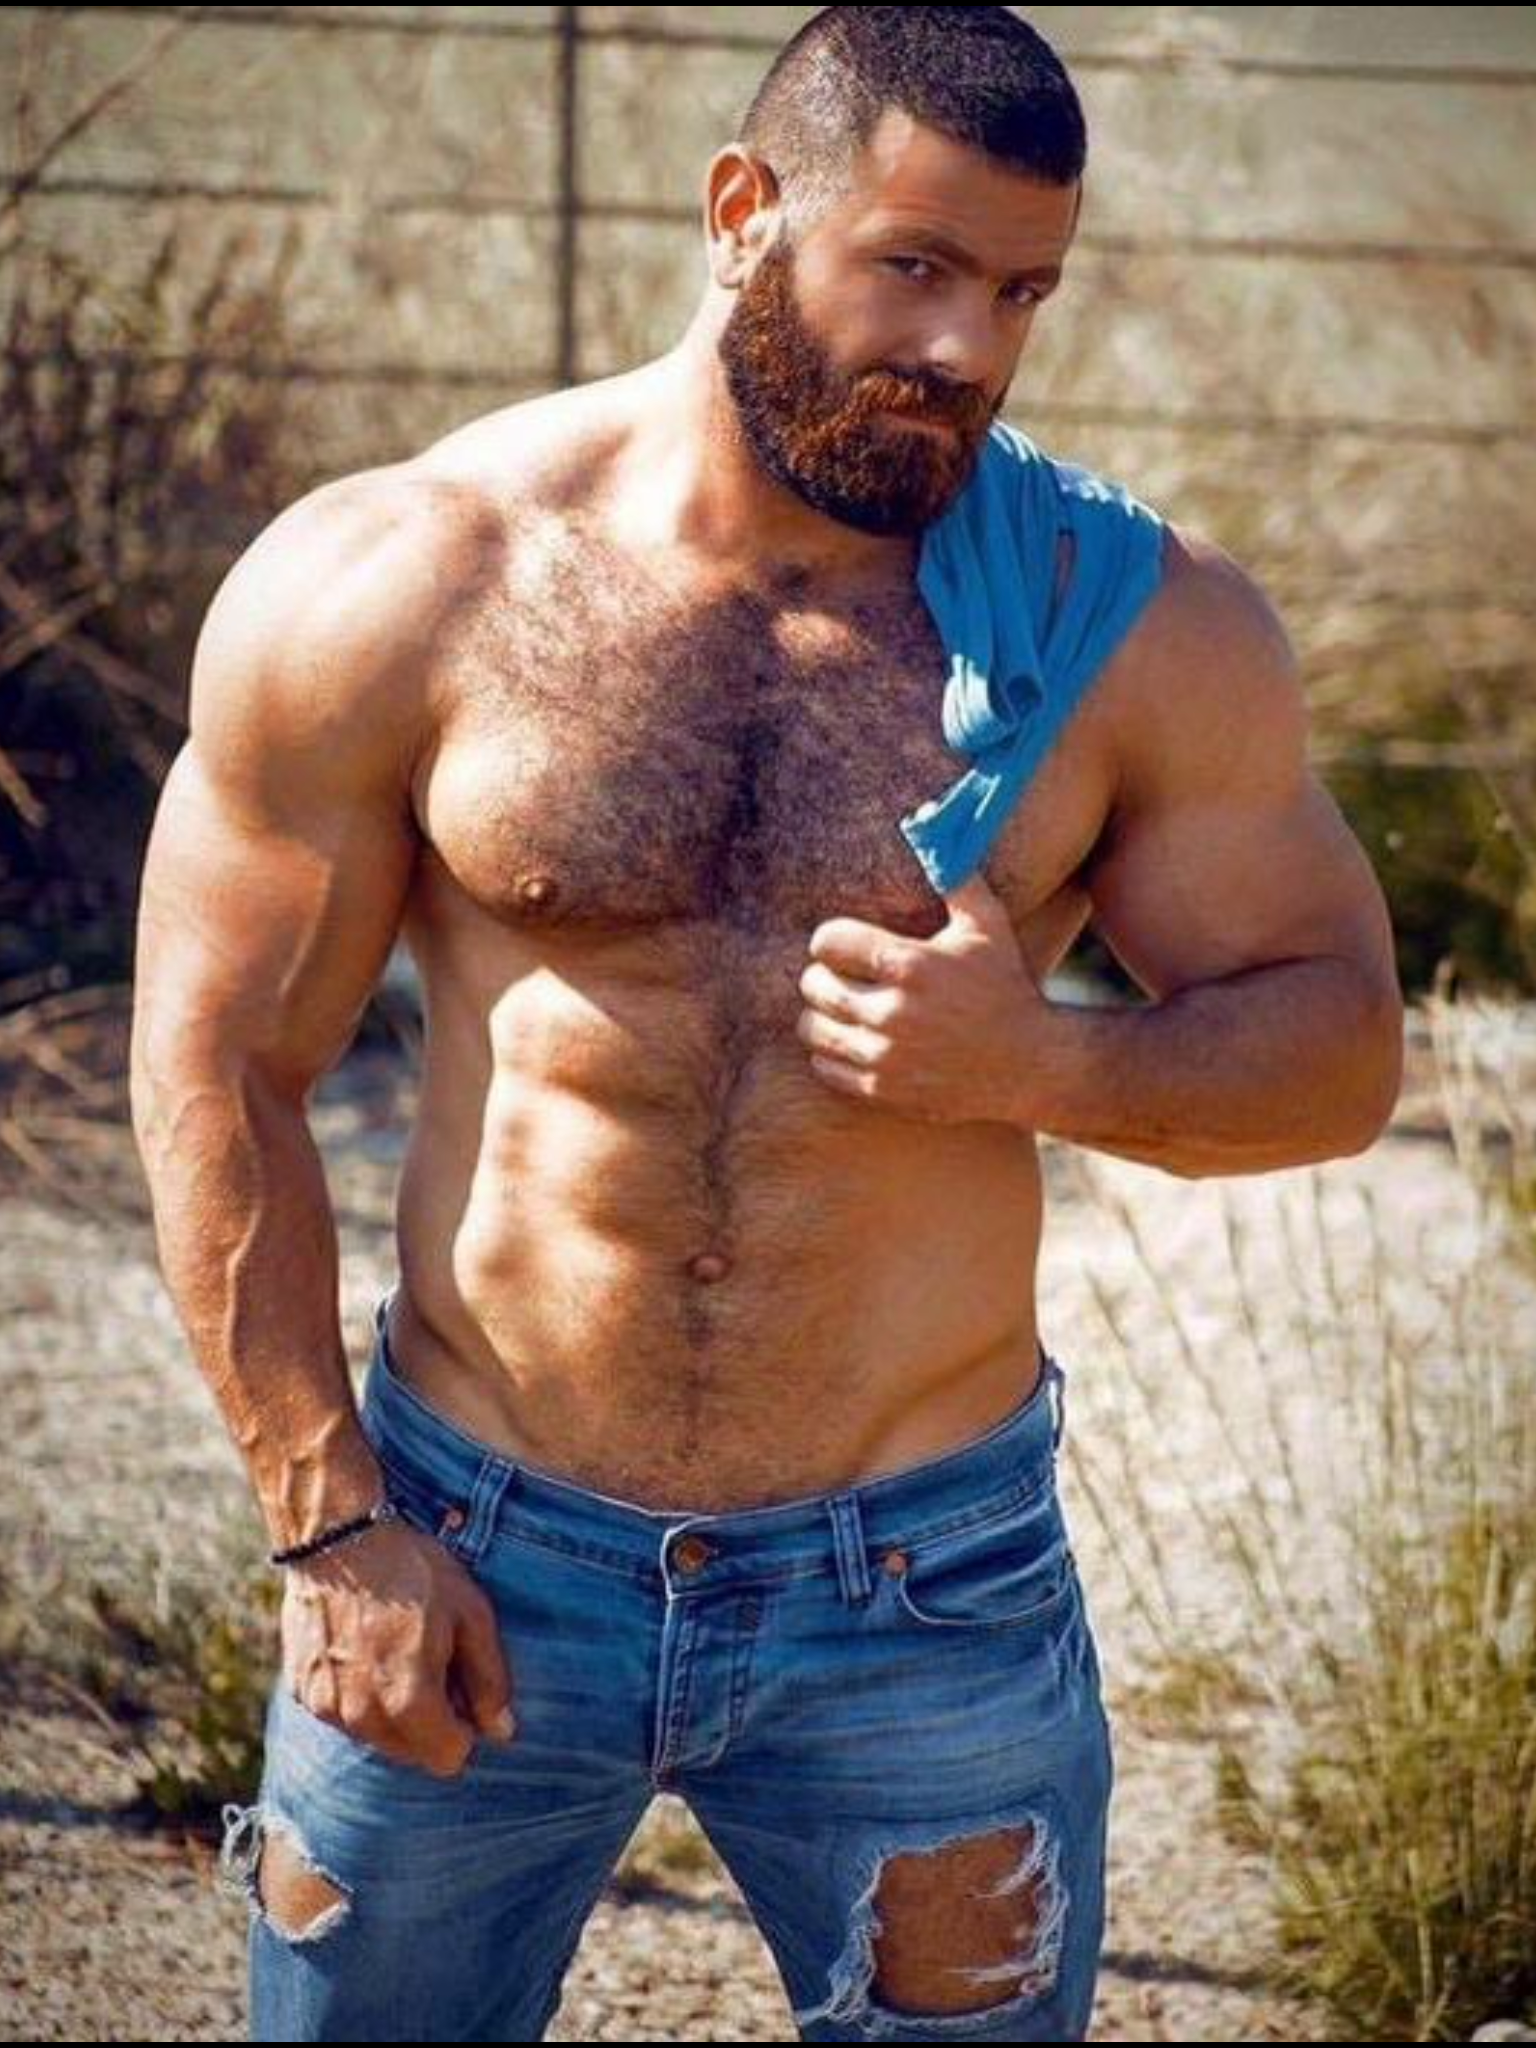 Naked hairy chested muscle men properties